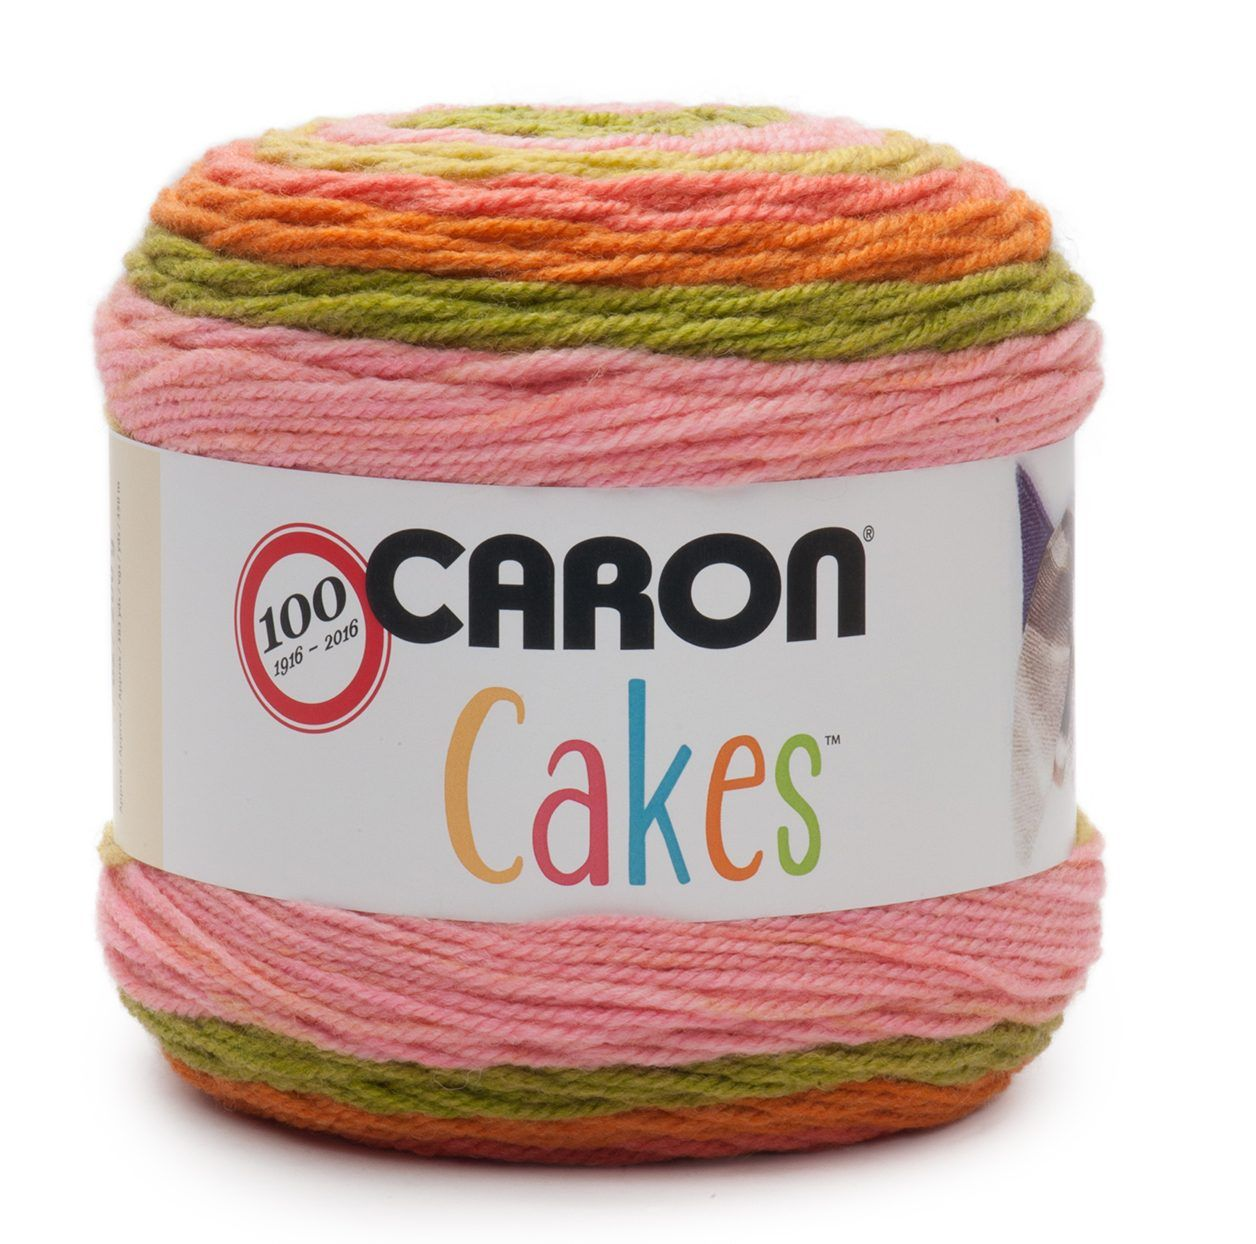 Free Crochet Patterns Featuring Caron Cakes Yarn Crafts Crochet